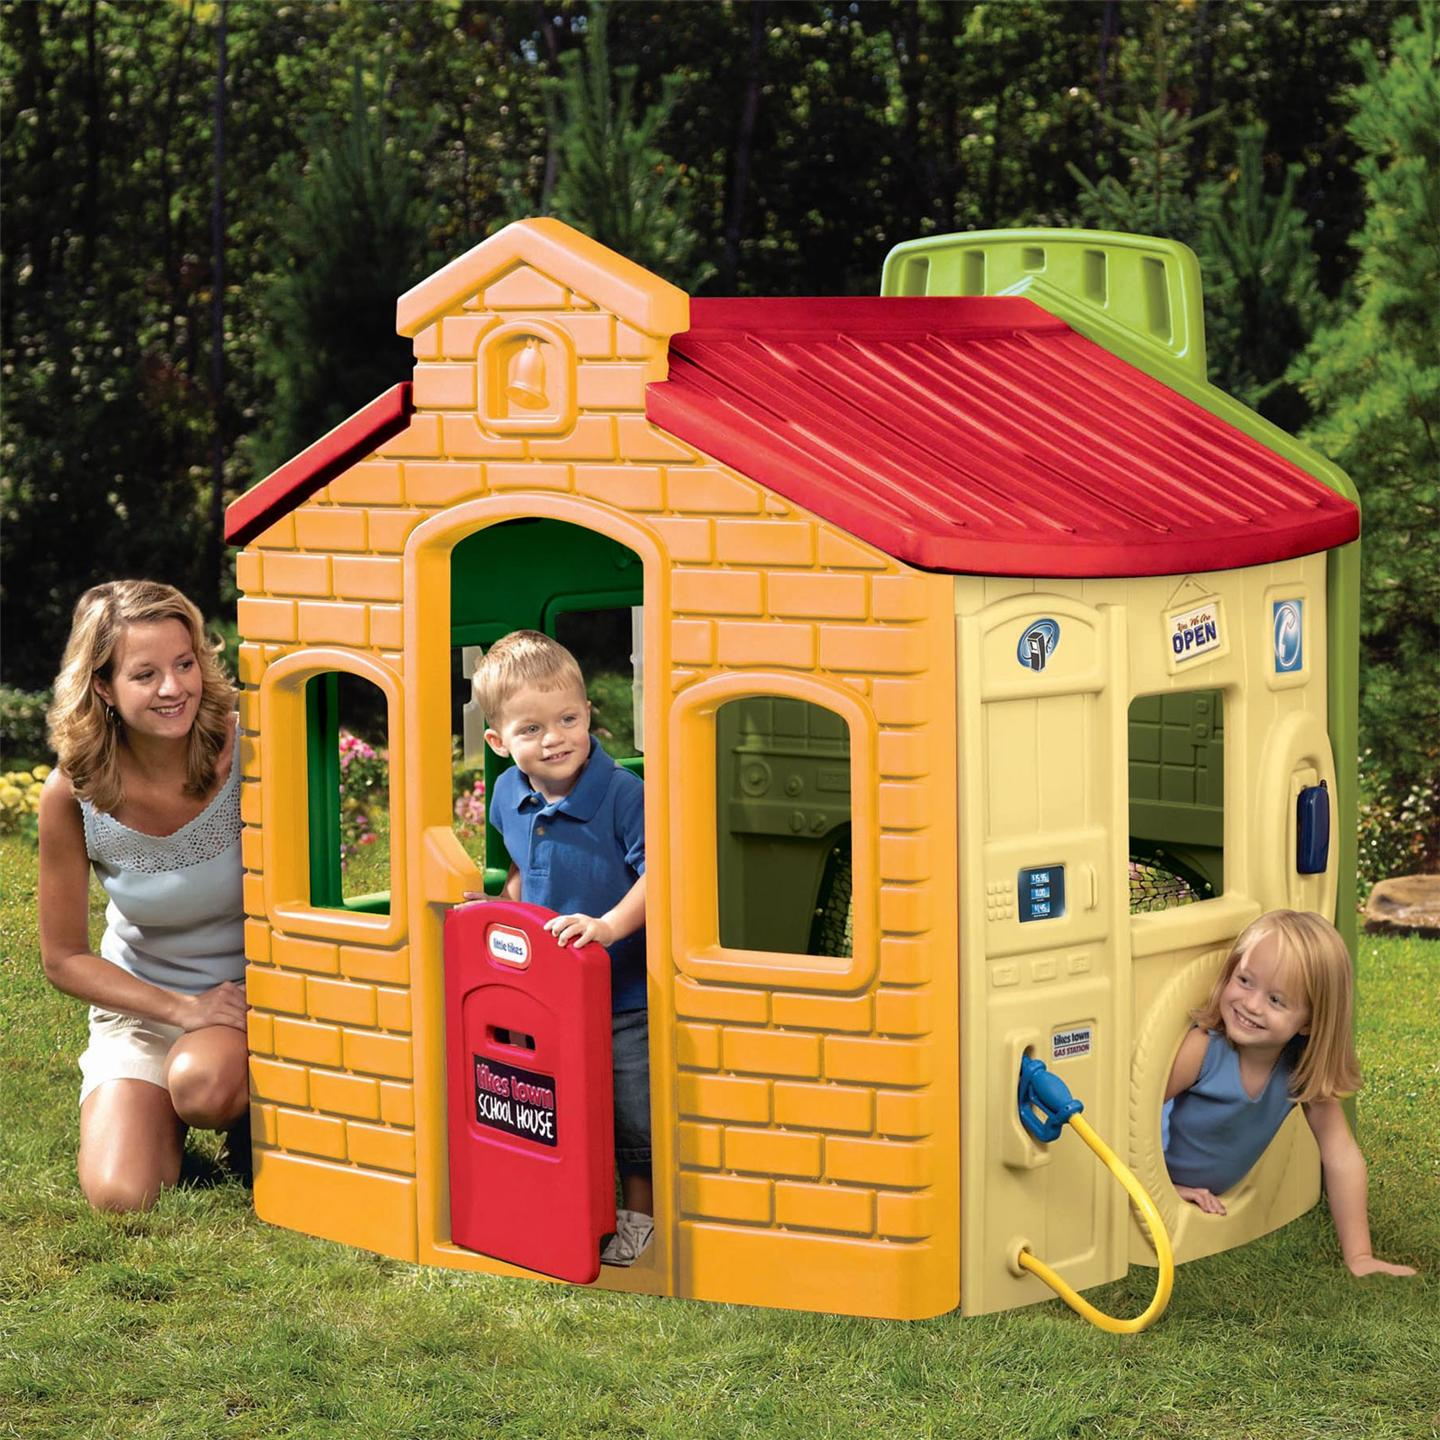 Awesome Little Tikes Playhouse Made Of Plastic With Red Roof And Yellow Siding For Playground Decor Ideas